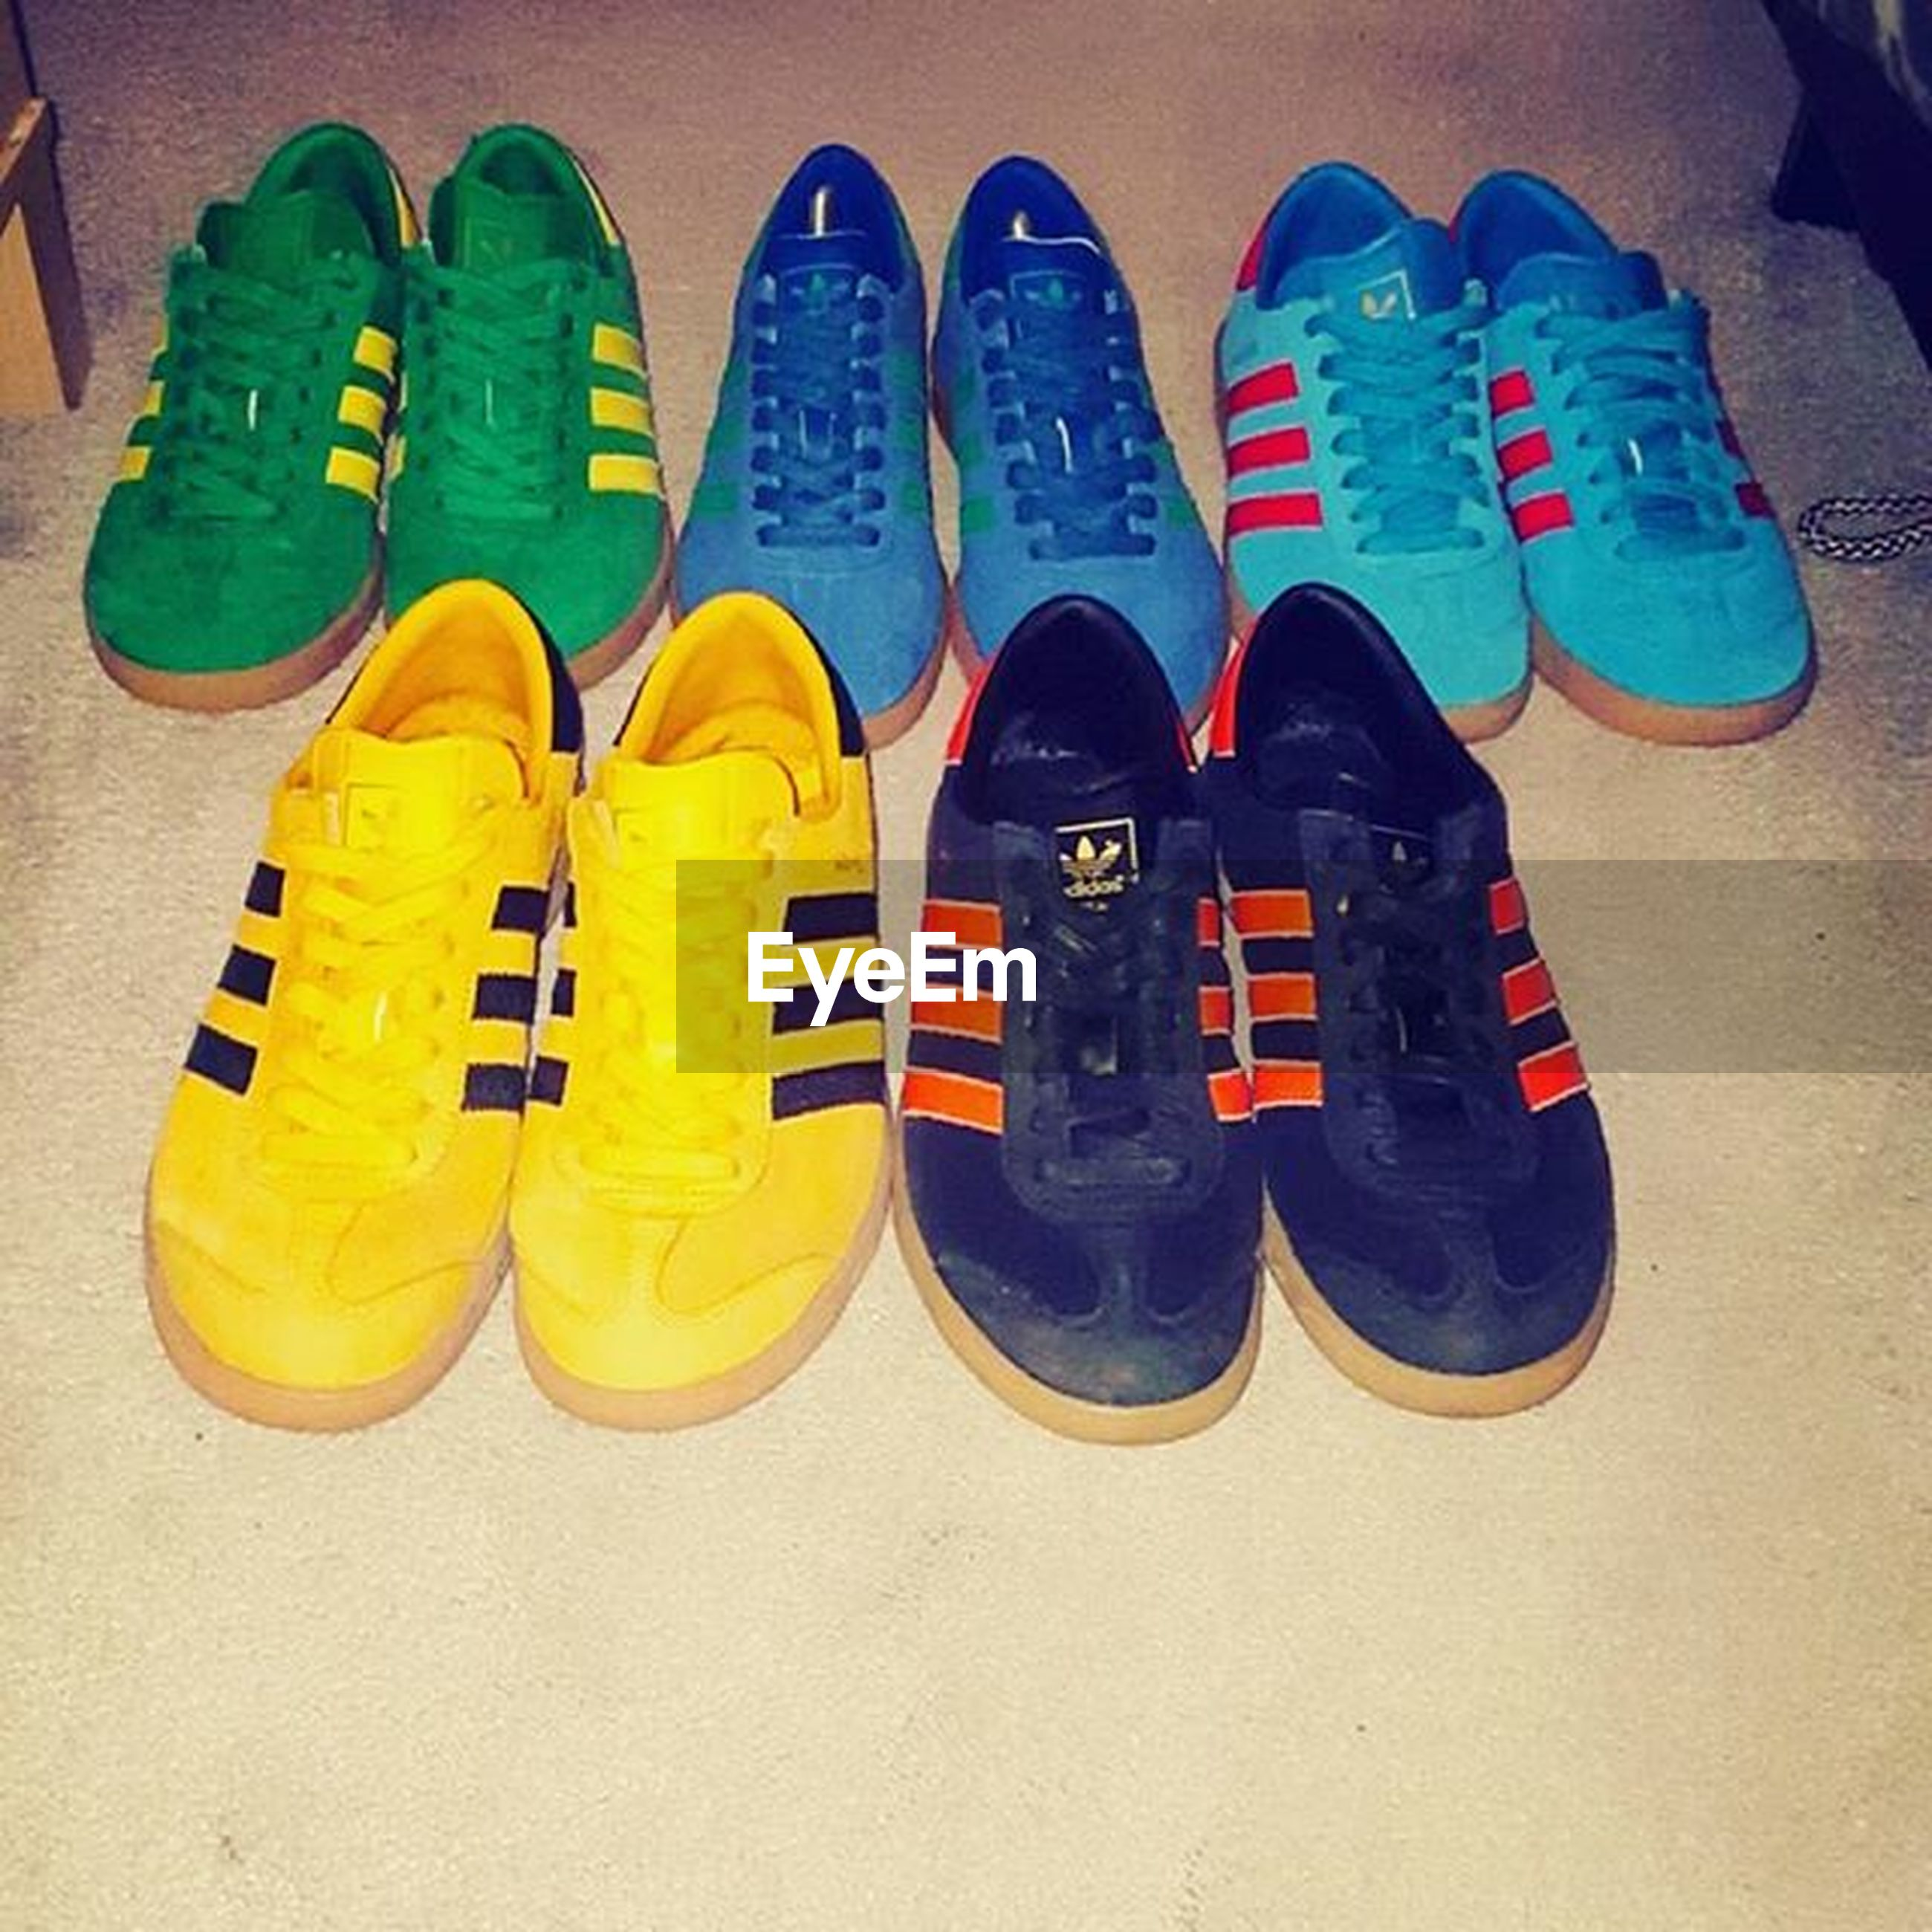 shoe, yellow, still life, high angle view, close-up, indoors, pair, footwear, two objects, side by side, metal, single object, no people, blue, multi colored, sport, black color, variation, in a row, man made object